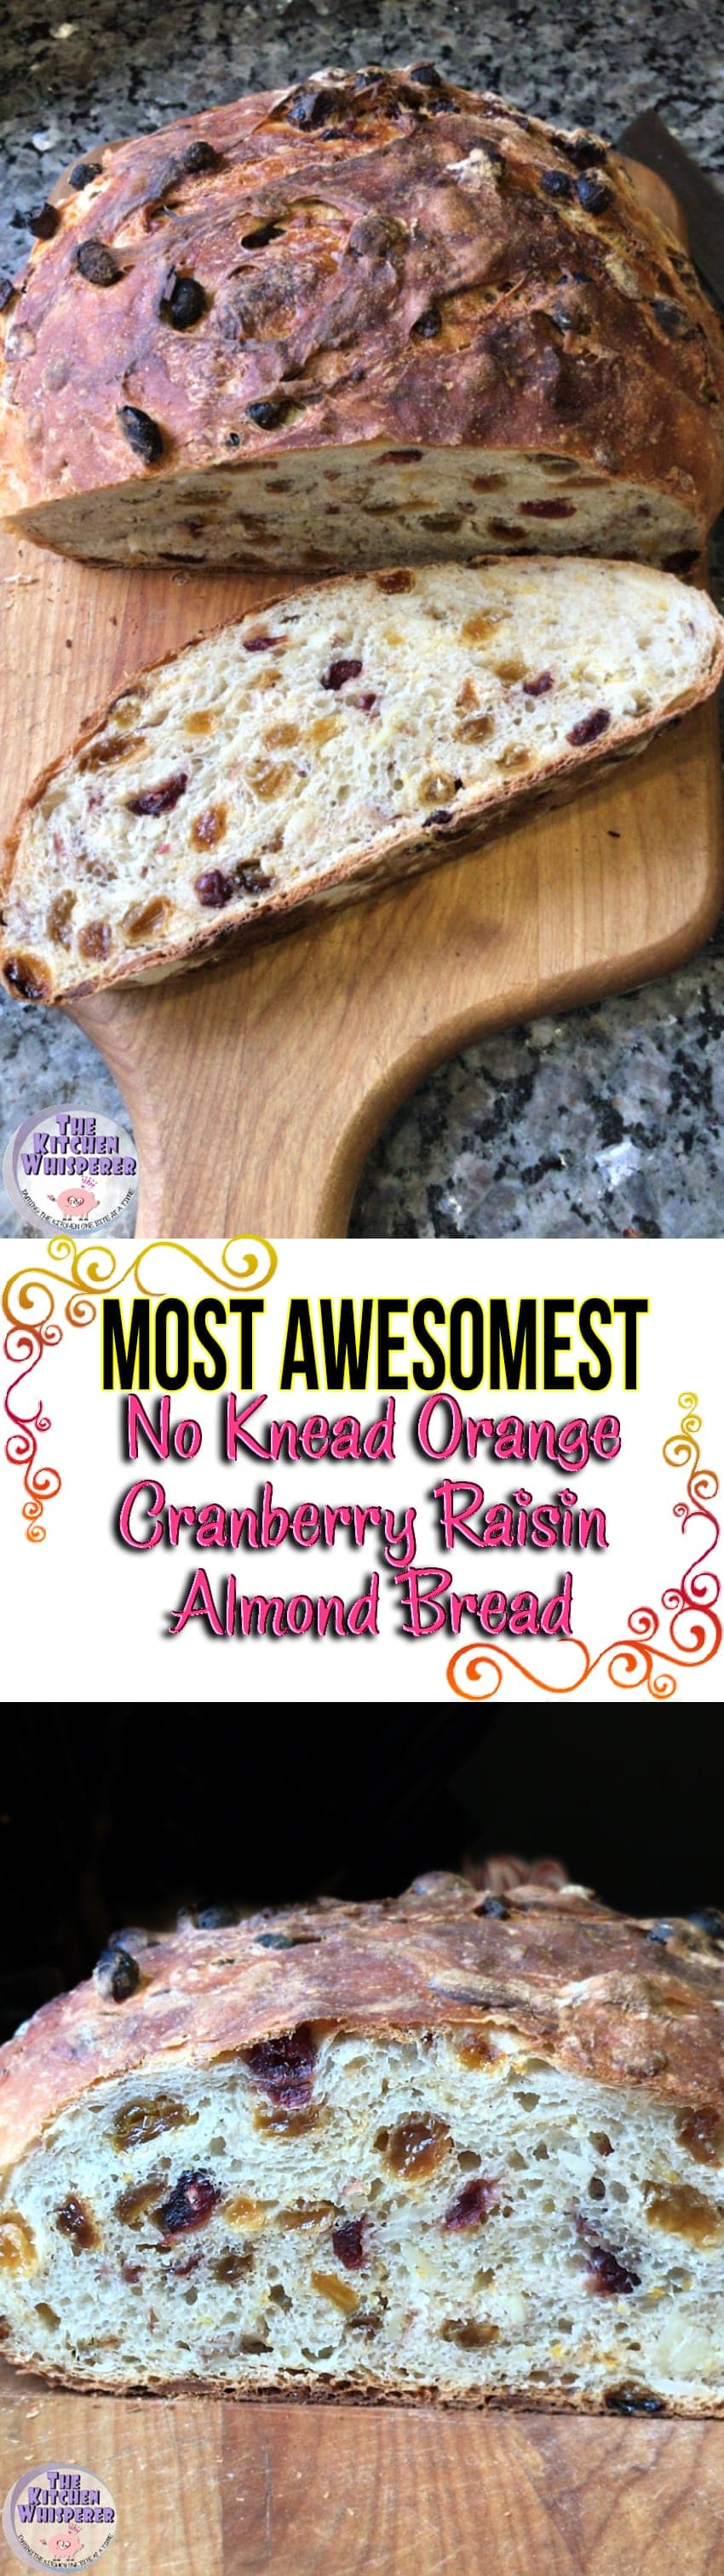 Most Awesomest No Knead Orange Cranberry Raisin Almond Bread